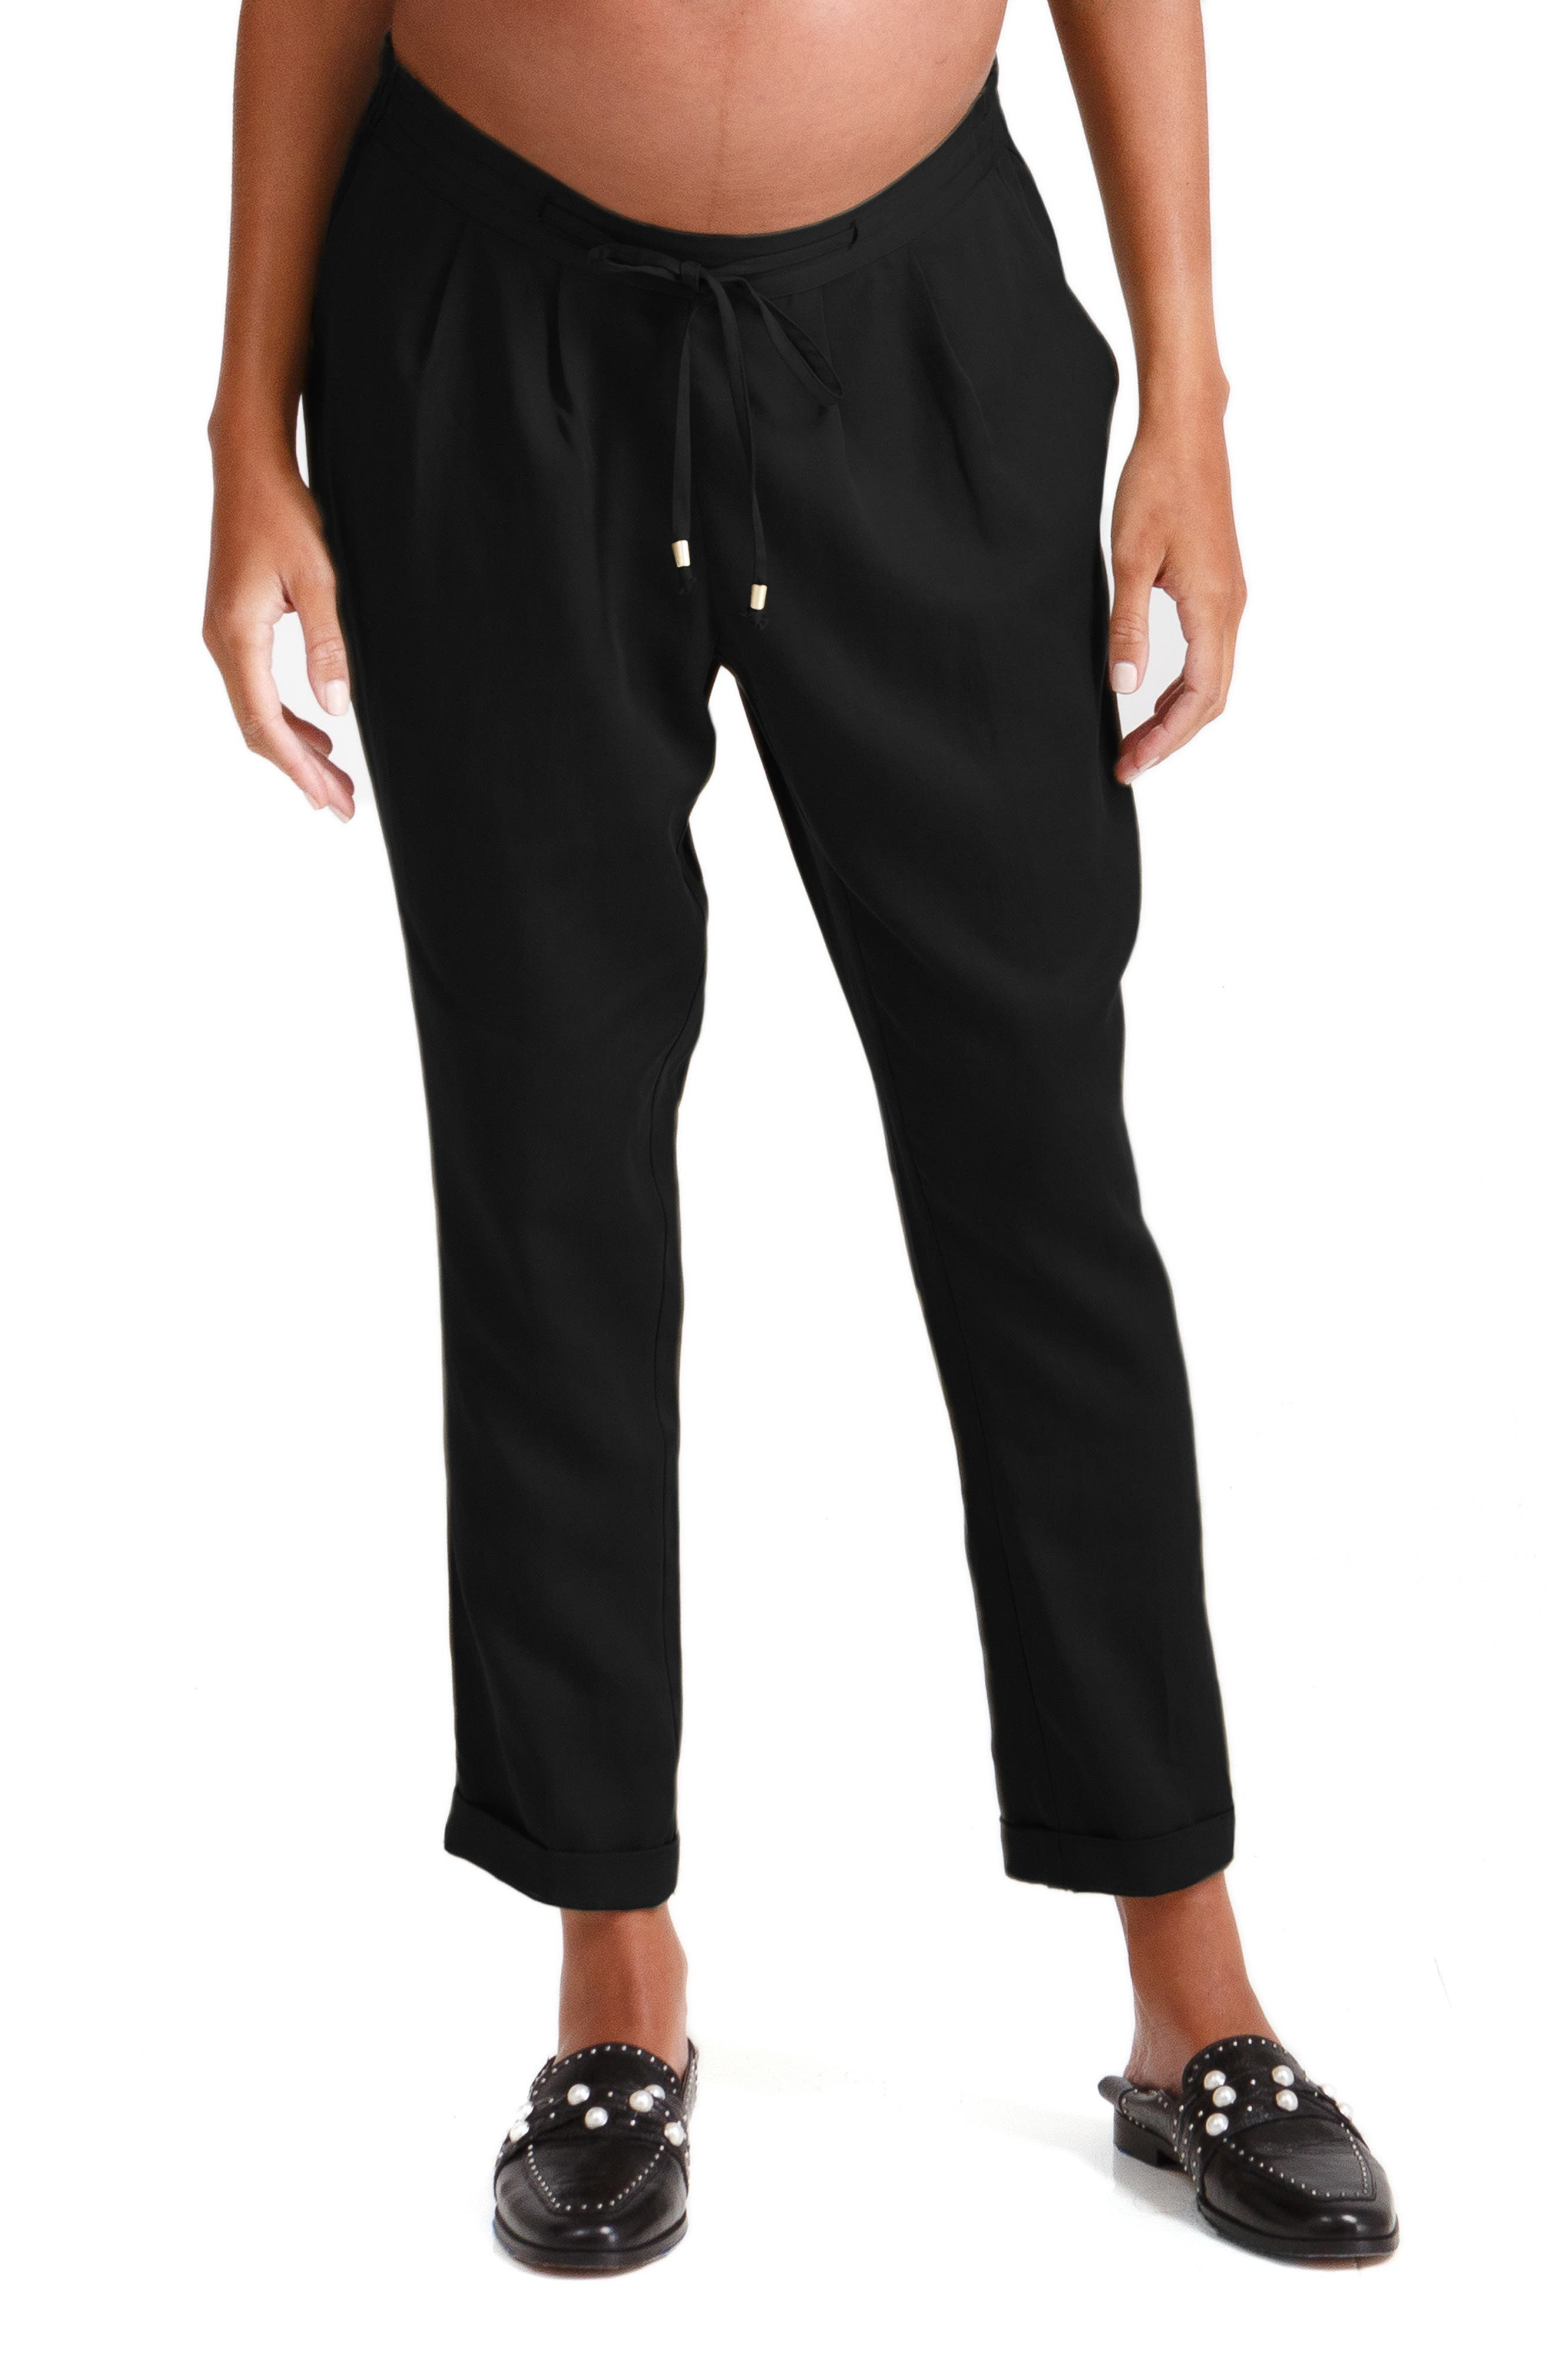 Women's Ingrid & Isabel Under Belly Tapered Maternity Ankle Pants